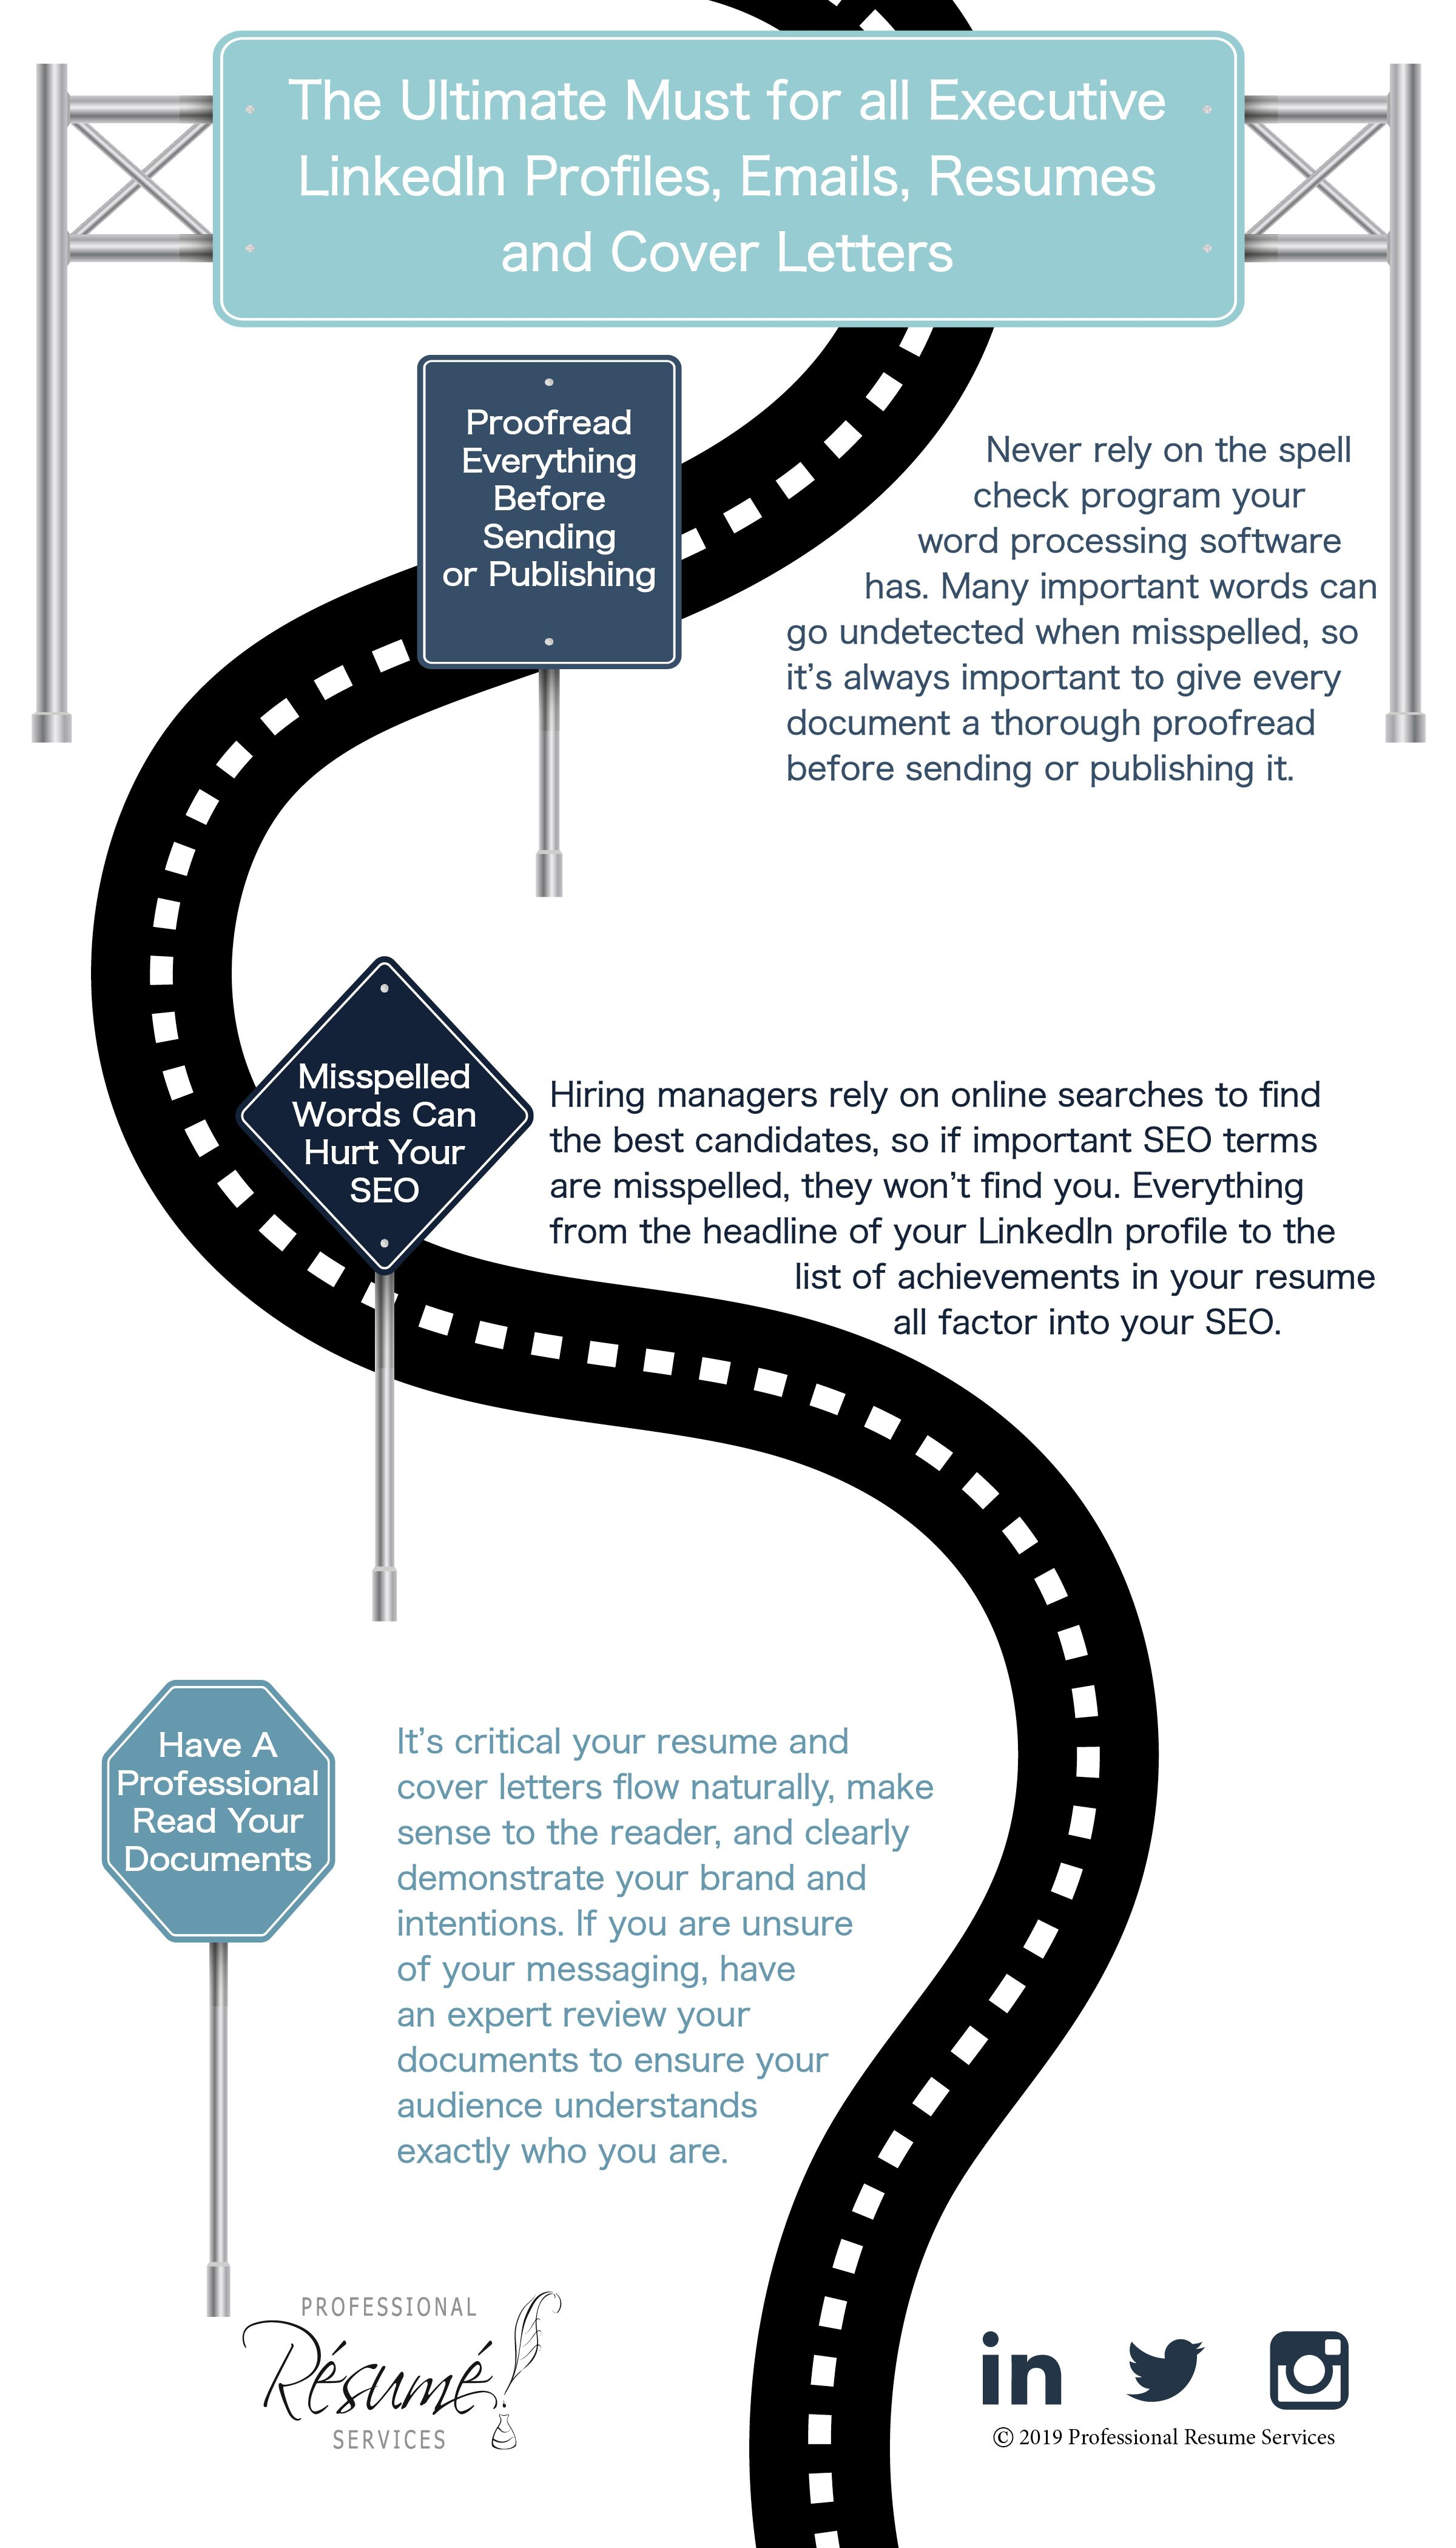 The ultimate must cover letters infographic flat